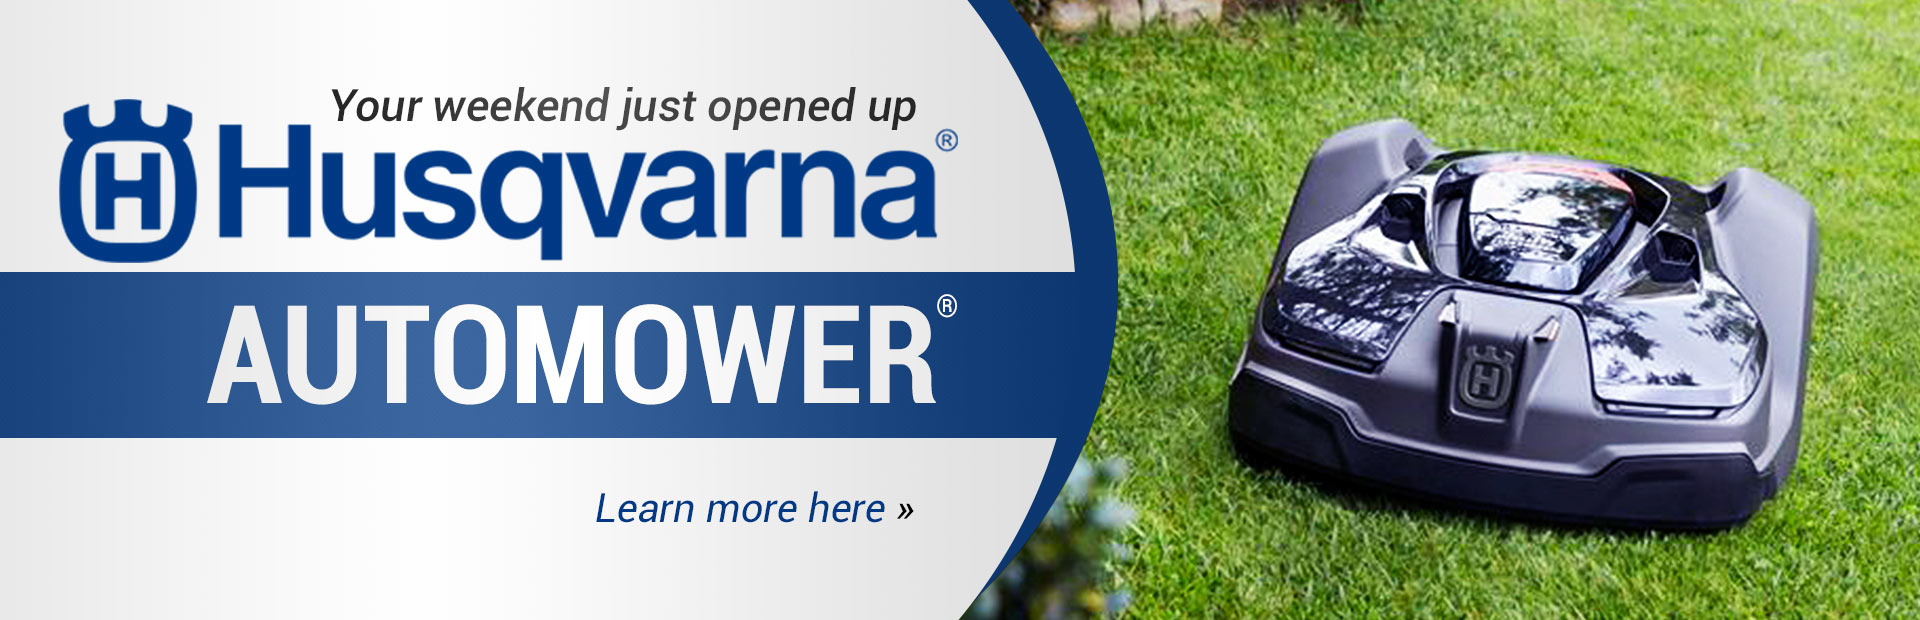 Husqvarna Automower®: Click here to learn more.